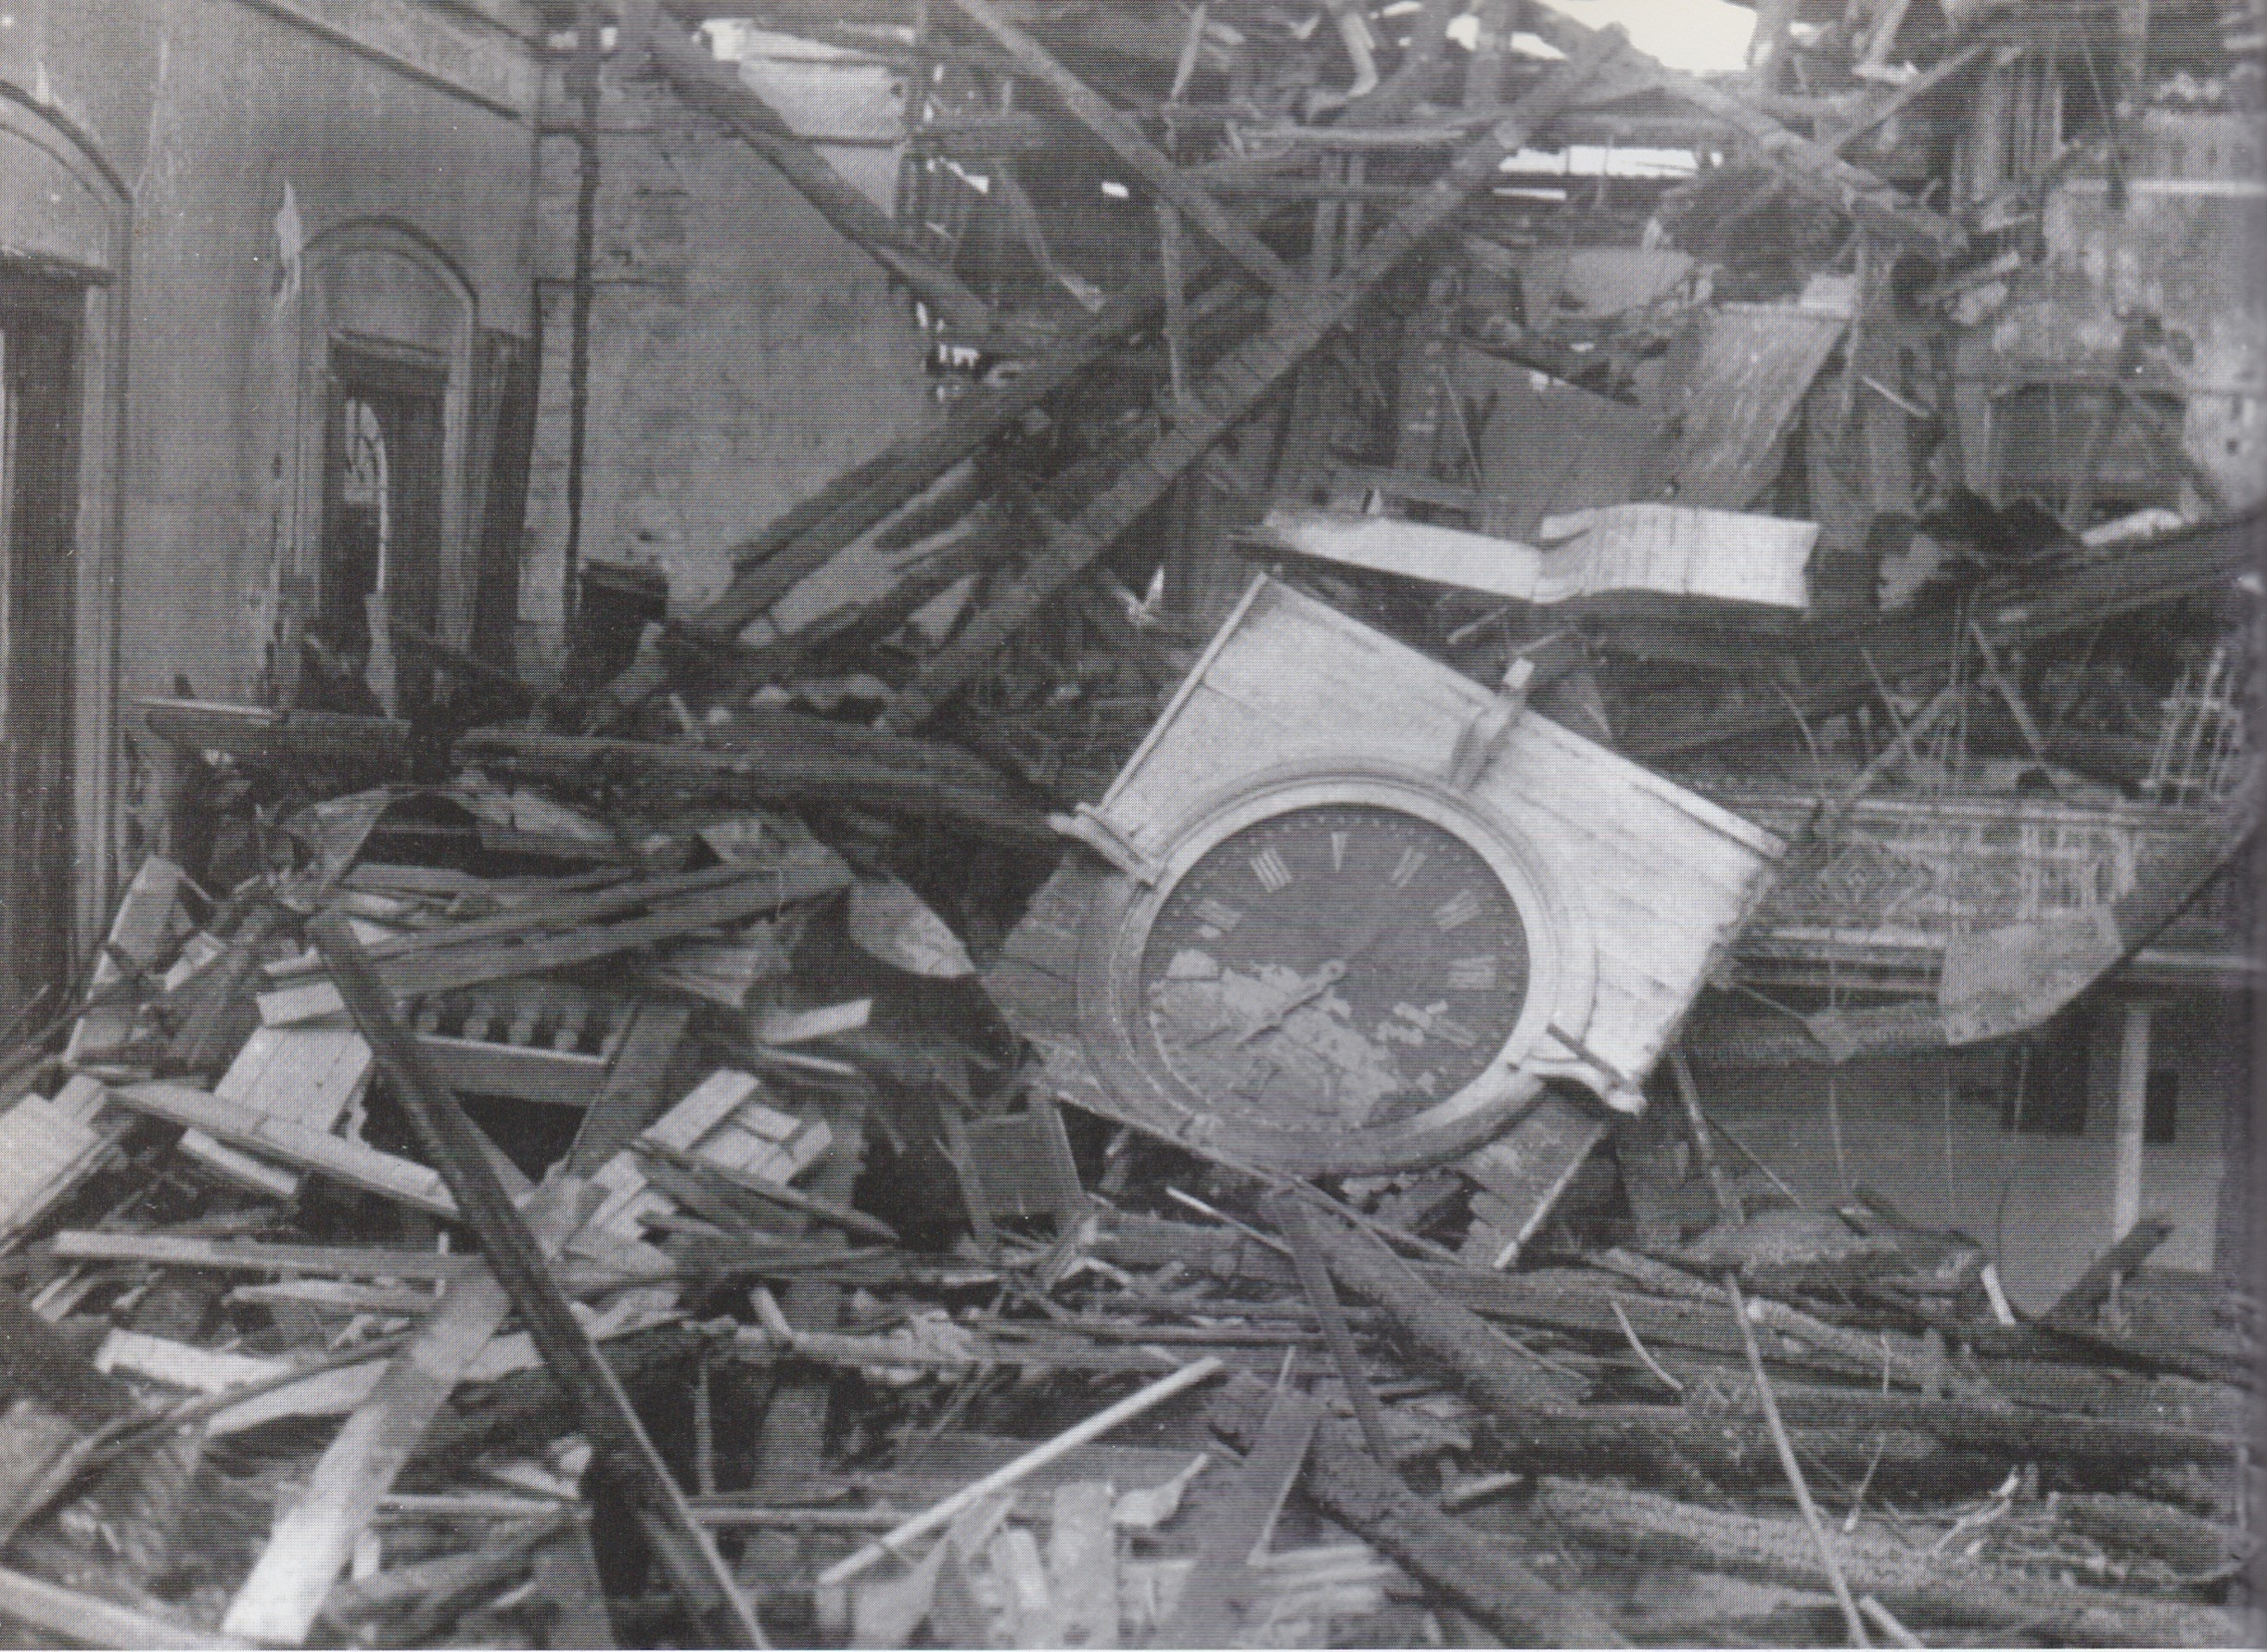 Maple St Church Clock and Rubble (1)